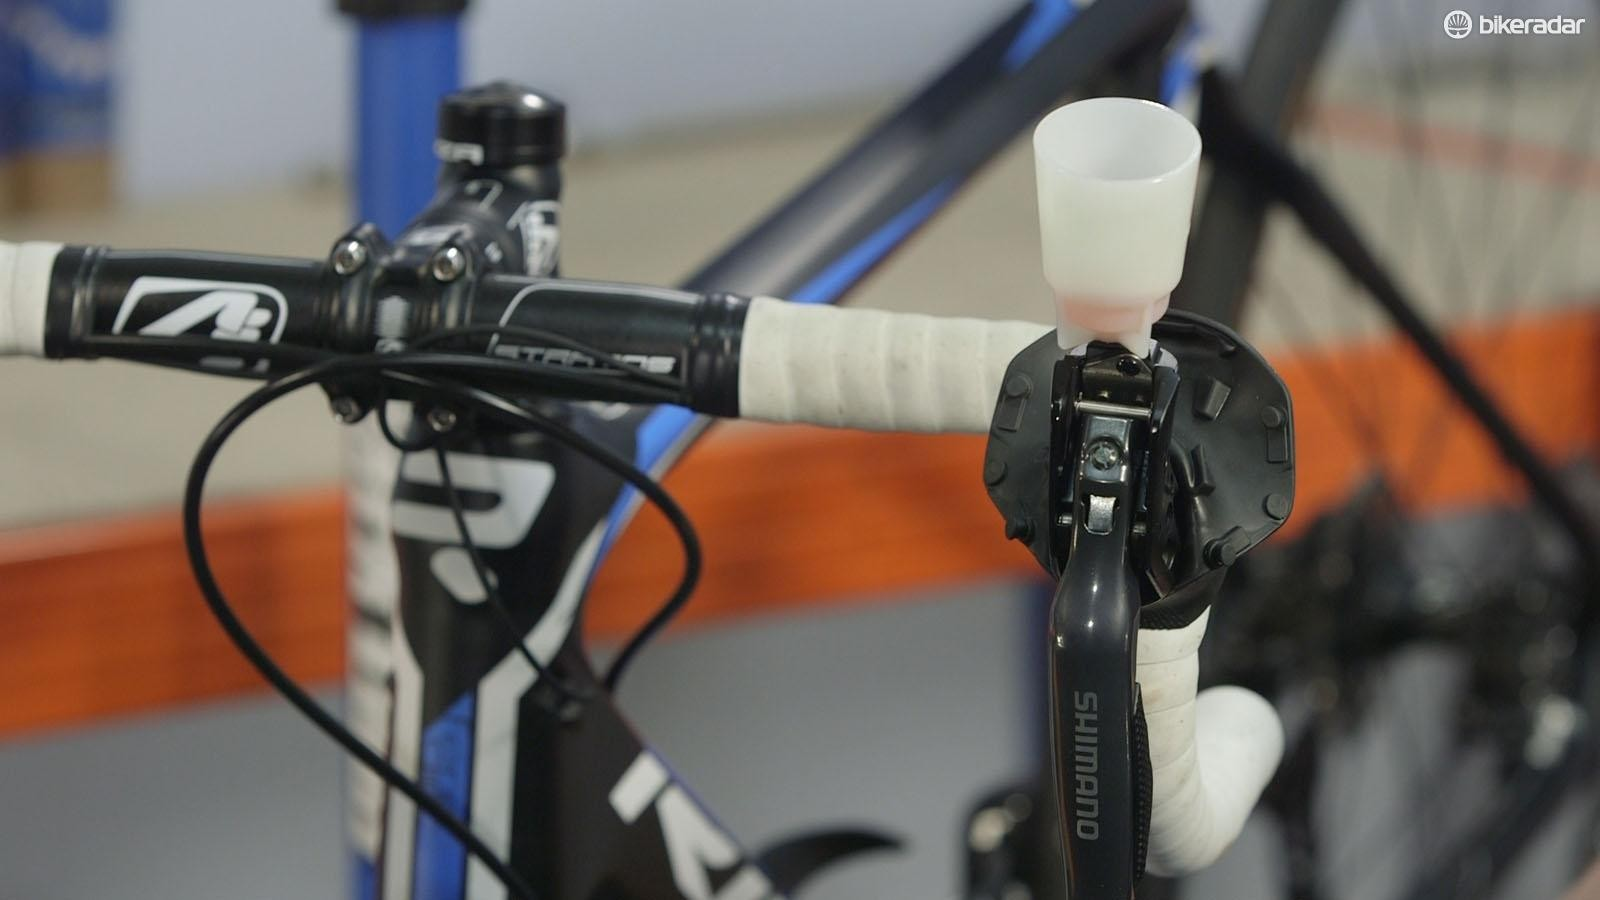 As you squeeze the syringe, fluid should begin to rise into the pot on top of the brake lever